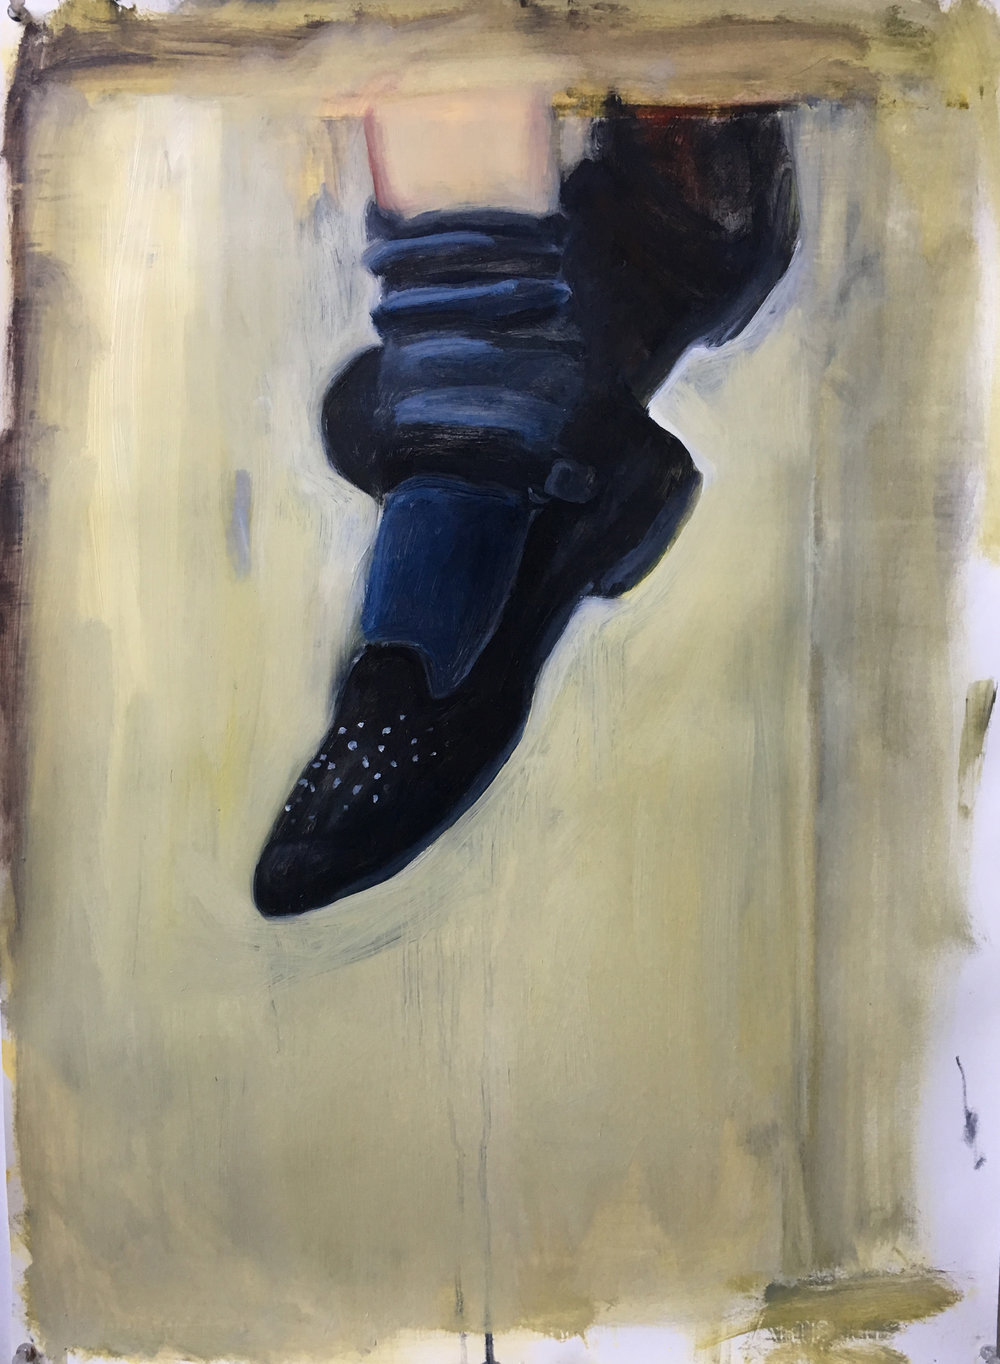 Cassis' Shoes (The Story Never Ended Here)   Oil with inkjet print collage elements on heavyweight watercolor paper  22x30